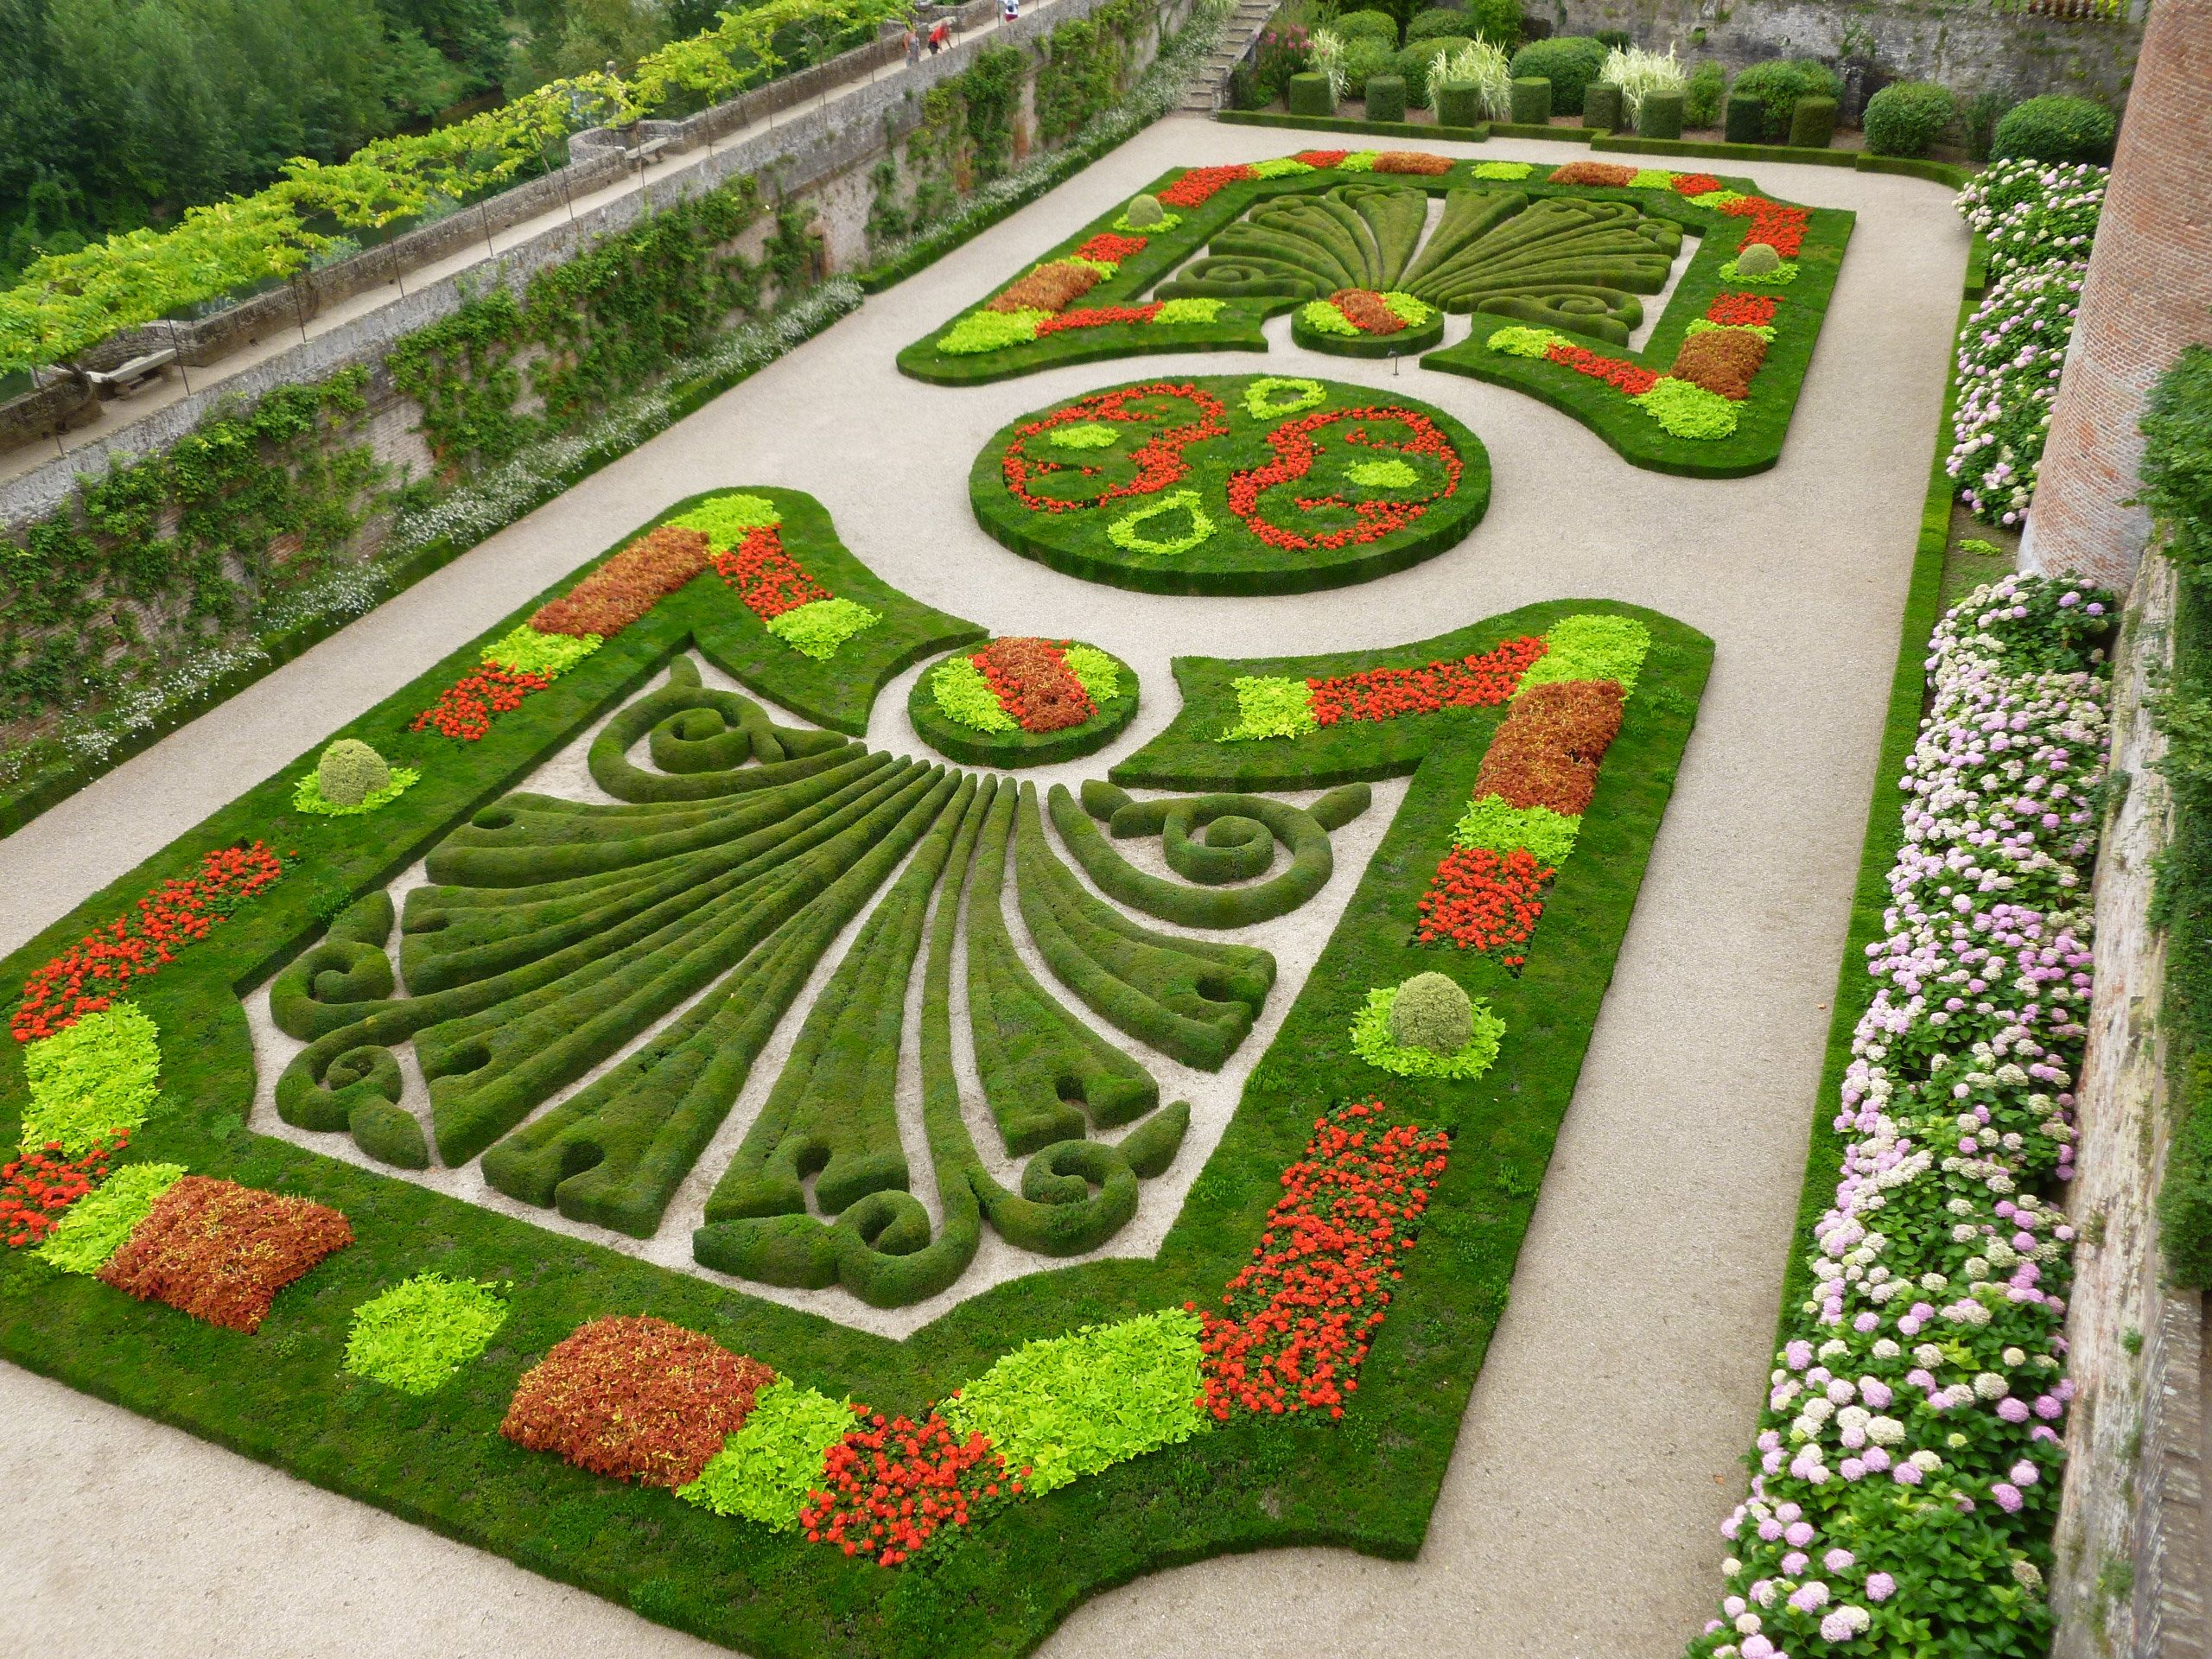 A Formal Garden In Albi France. Wow   Now Thatu0027s Sculpture With Flowers.